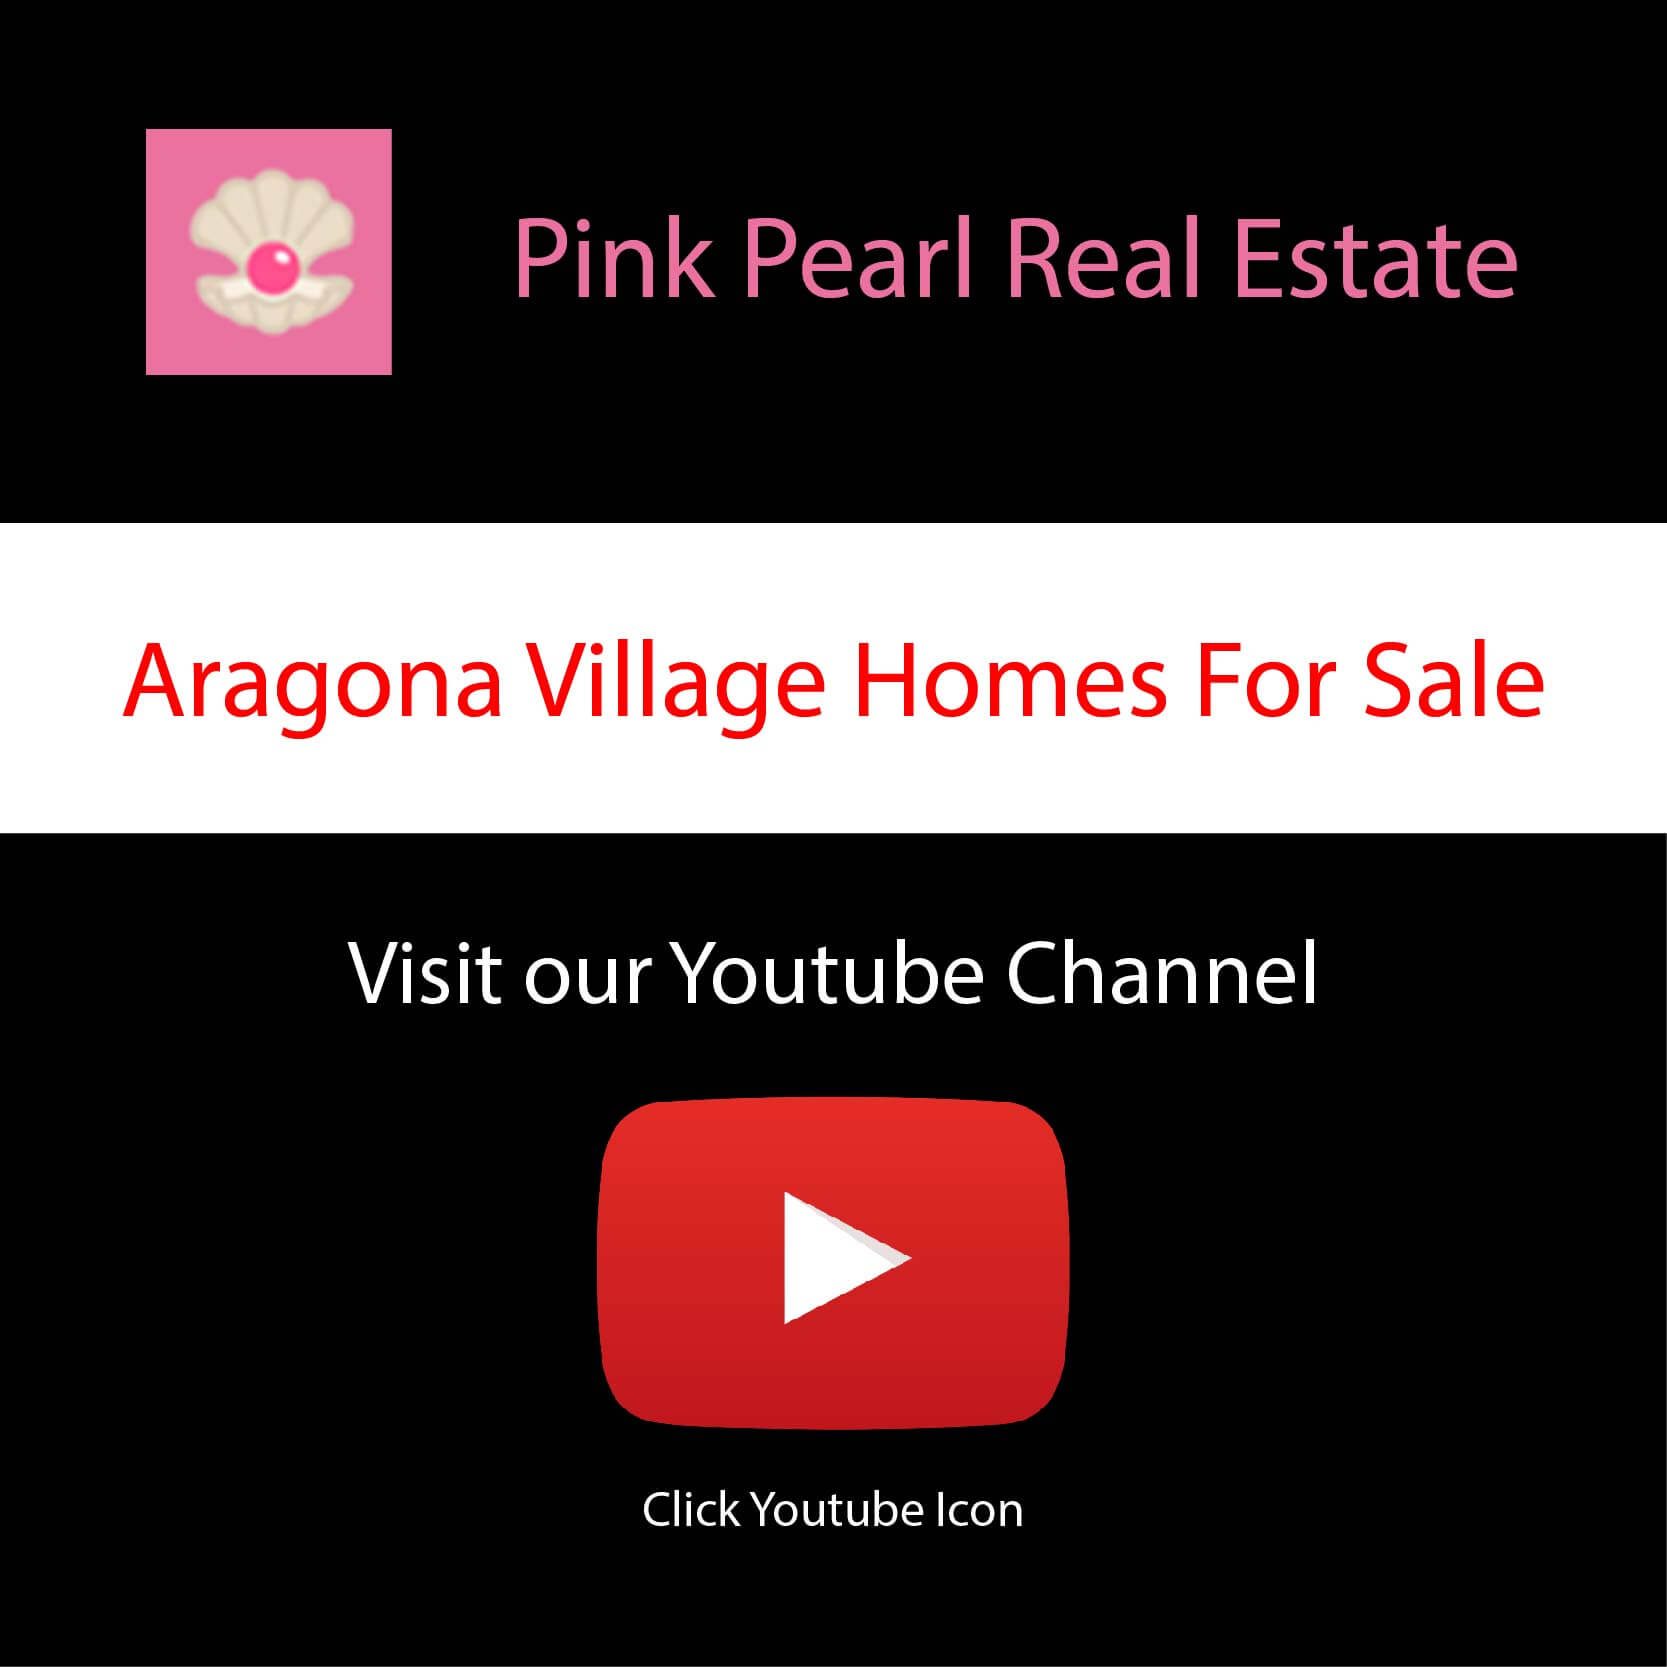 Visit Aragona Village Homes For Sale on Youtube